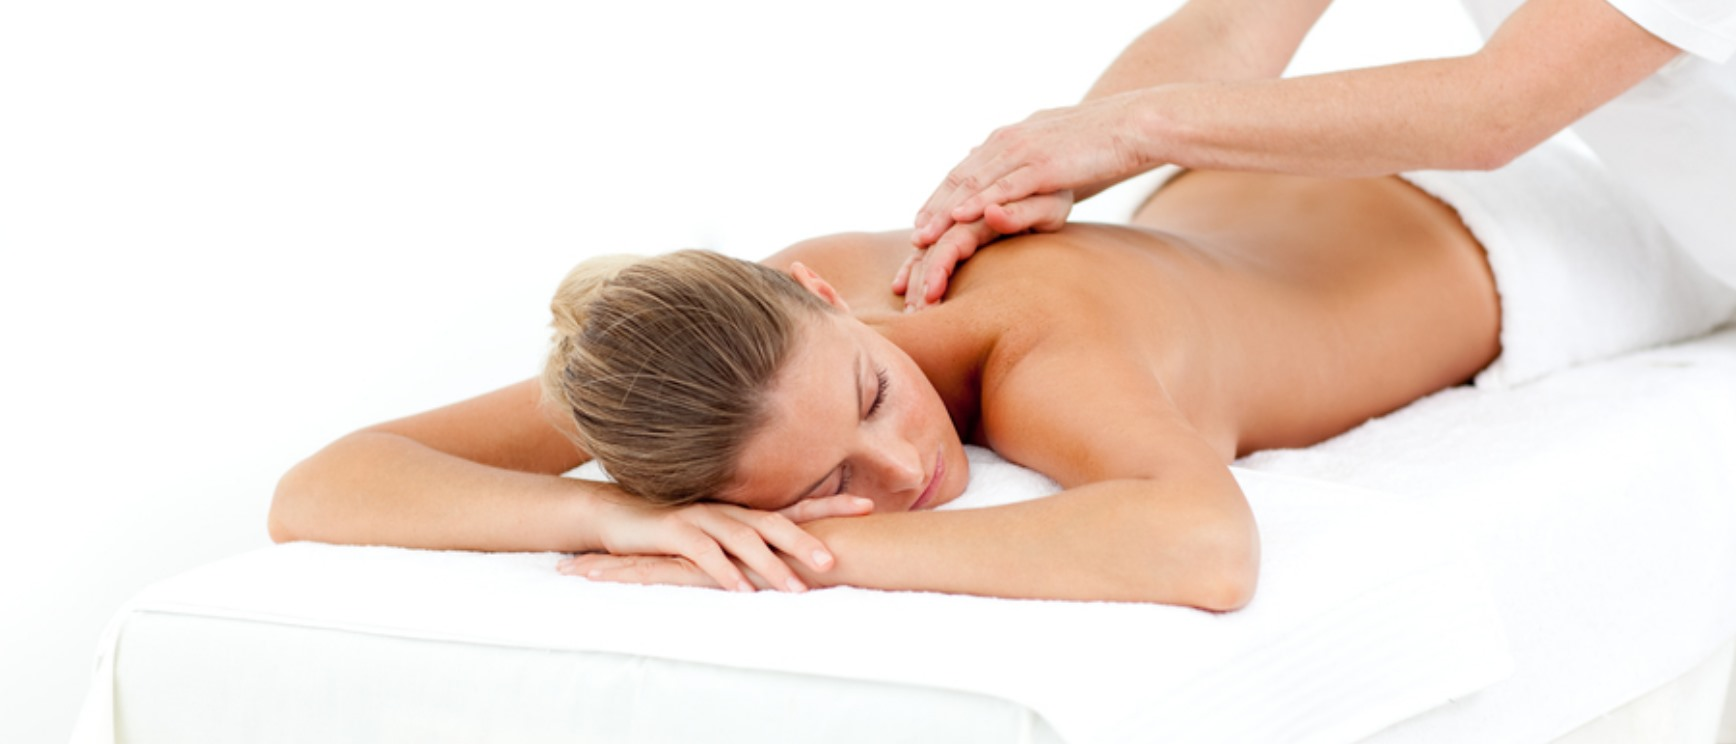 Things You Always Should Keep In Mind While Having Asian Massage